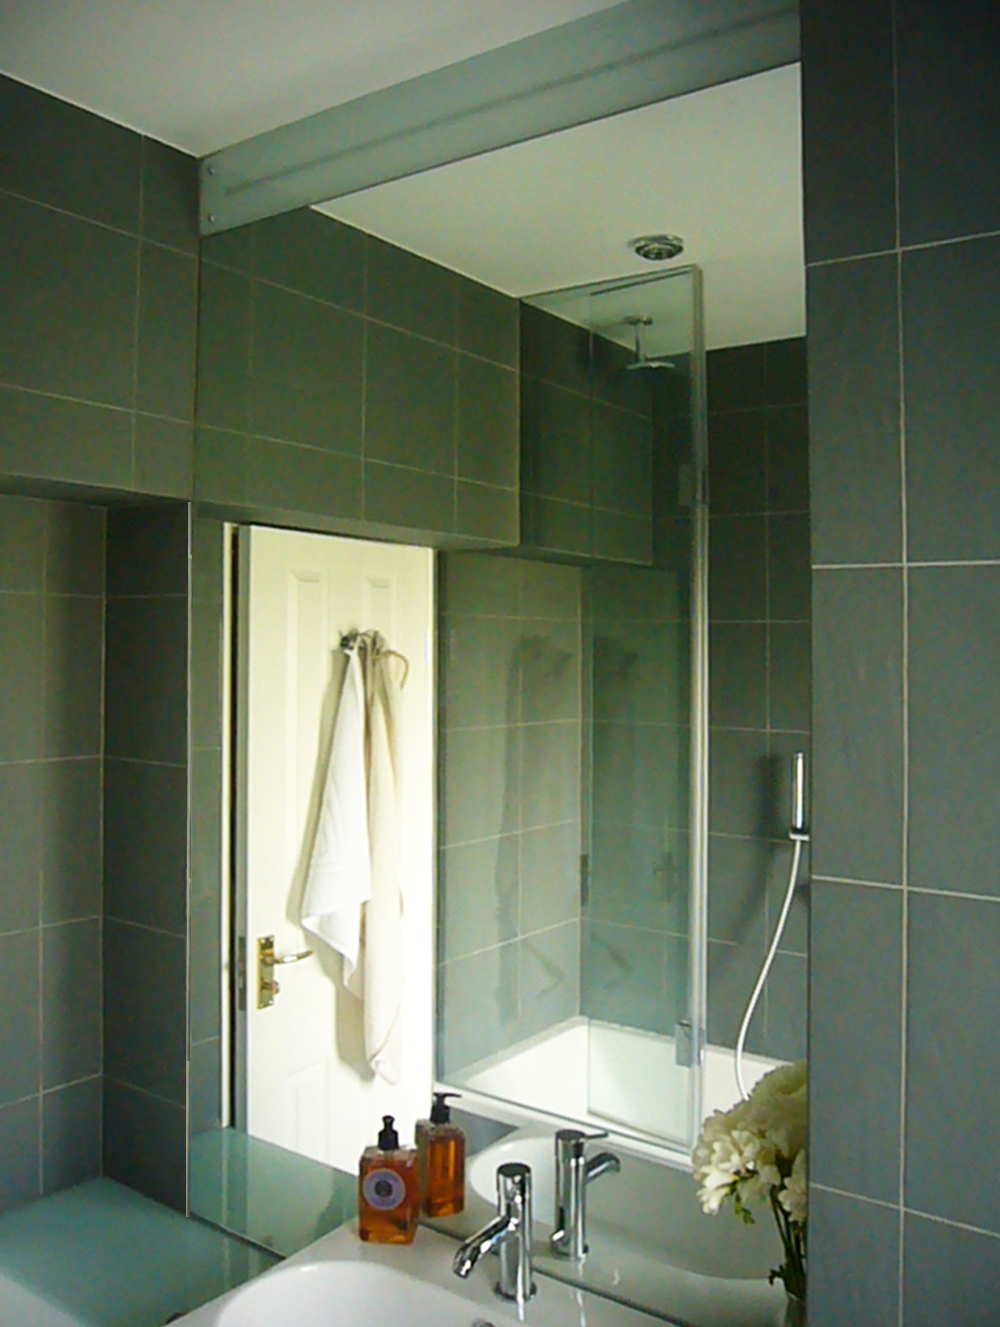 Pocket bathrooms projects ape architecture design ltd for Bathroom design ltd